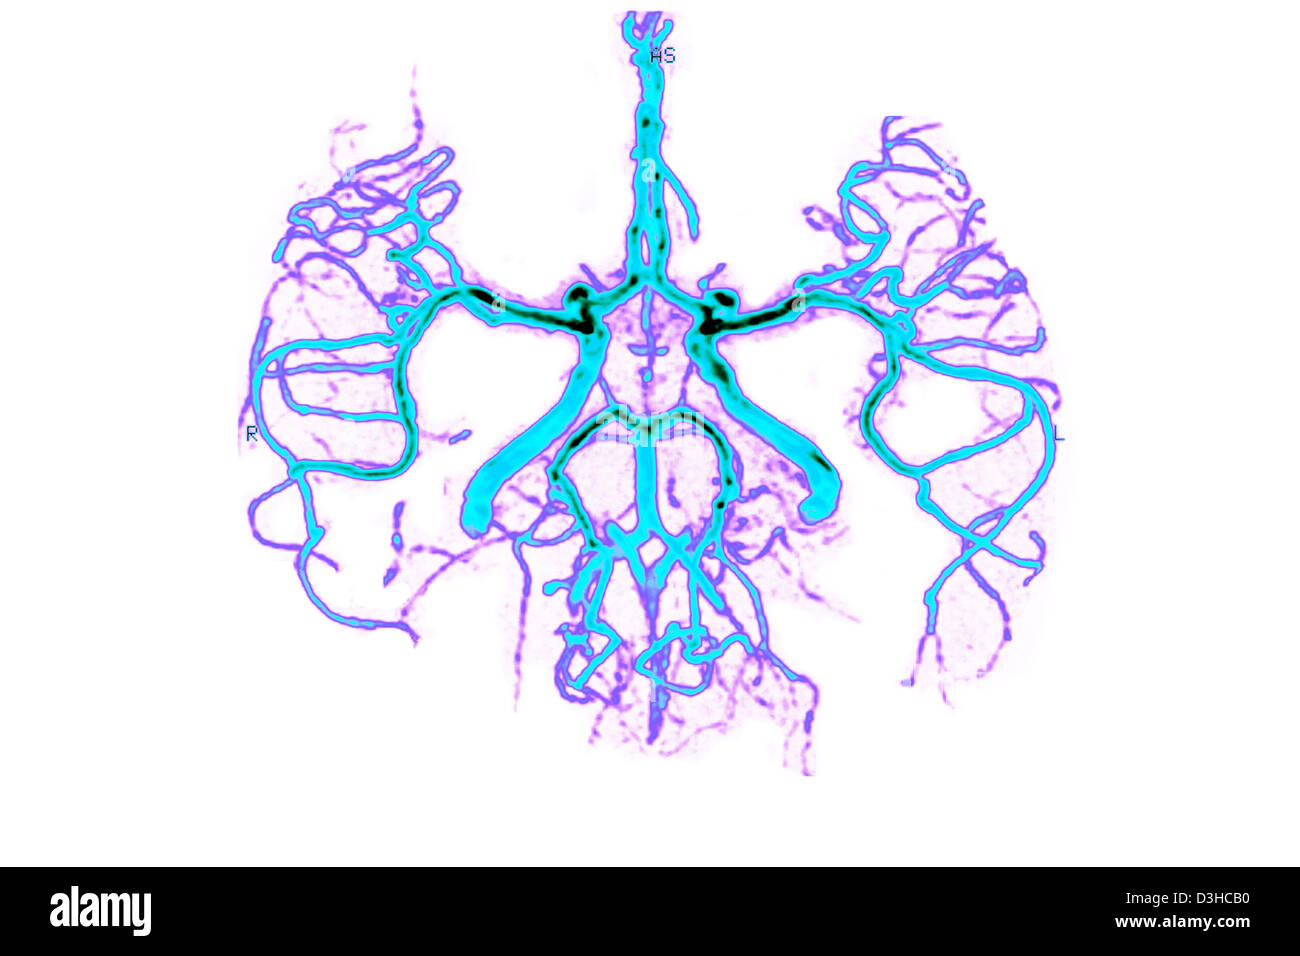 Circle Of Willis Imágenes De Stock & Circle Of Willis Fotos De Stock ...